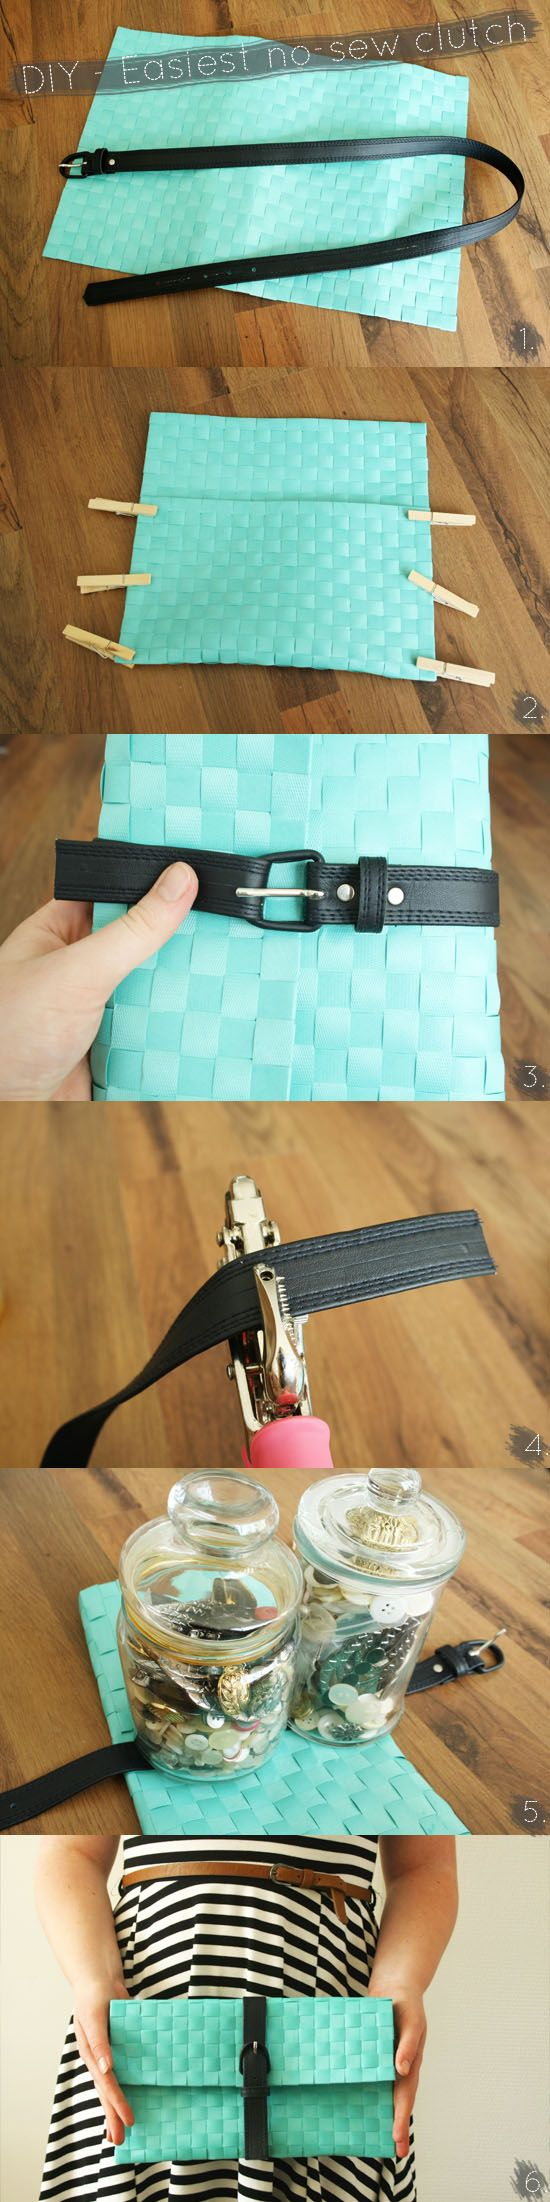 This clutch is made from a placemat and a belt. | 31 Easy DIY Projects You Won't Believe Are No-Sew